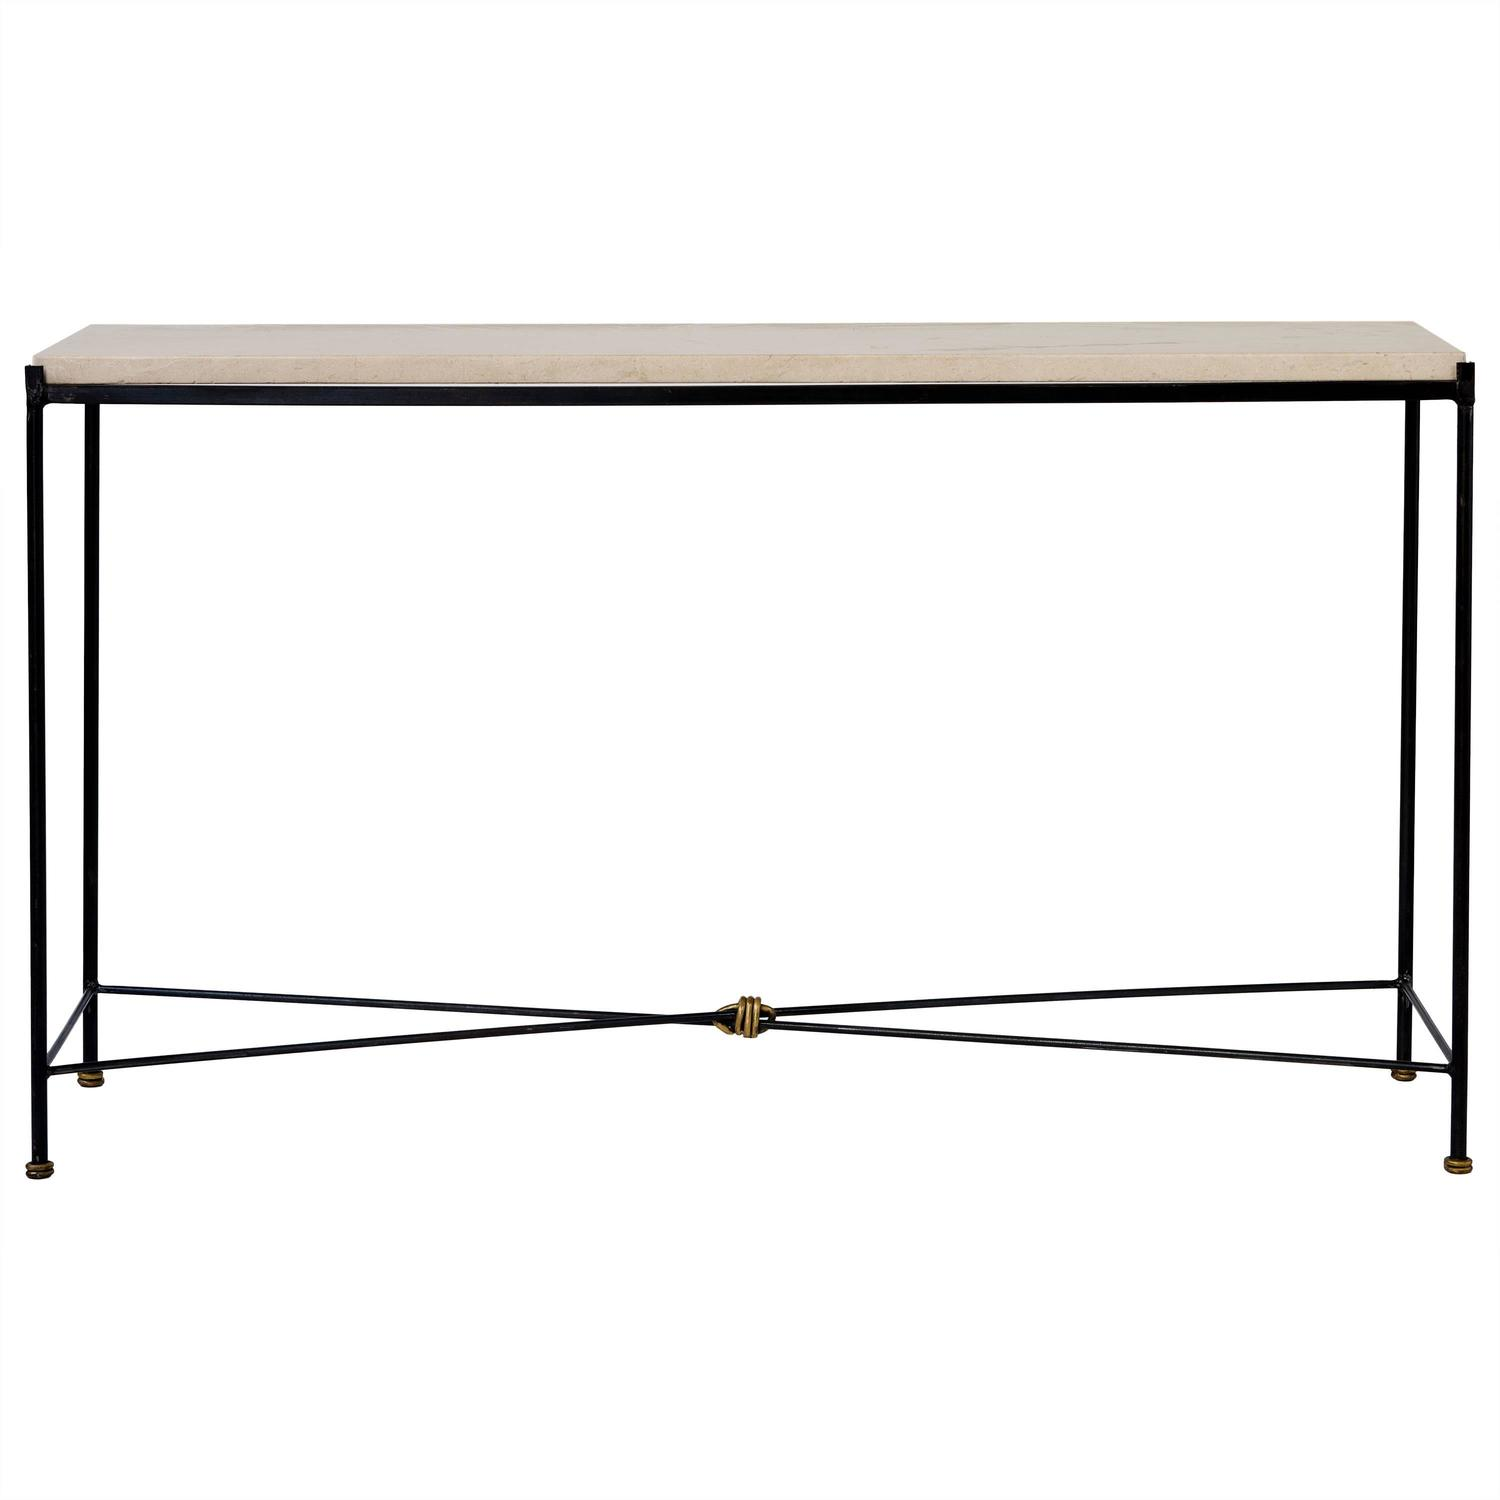 Tara Shaw Maison Iron Console With Stone Top For Sale At